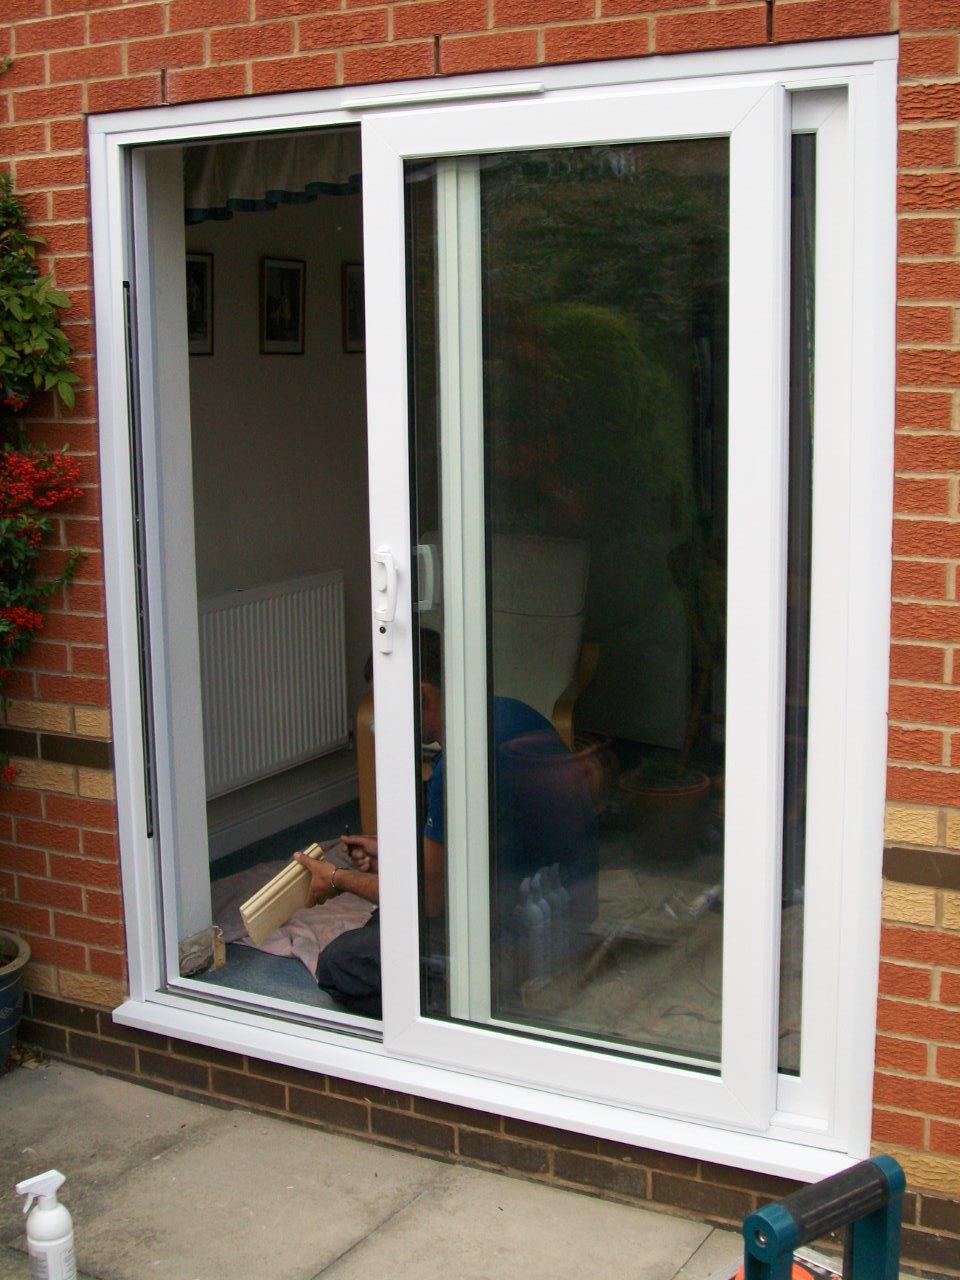 Sliding Patio Doors vs Bi-fold Doors -Which Ones To Choose?